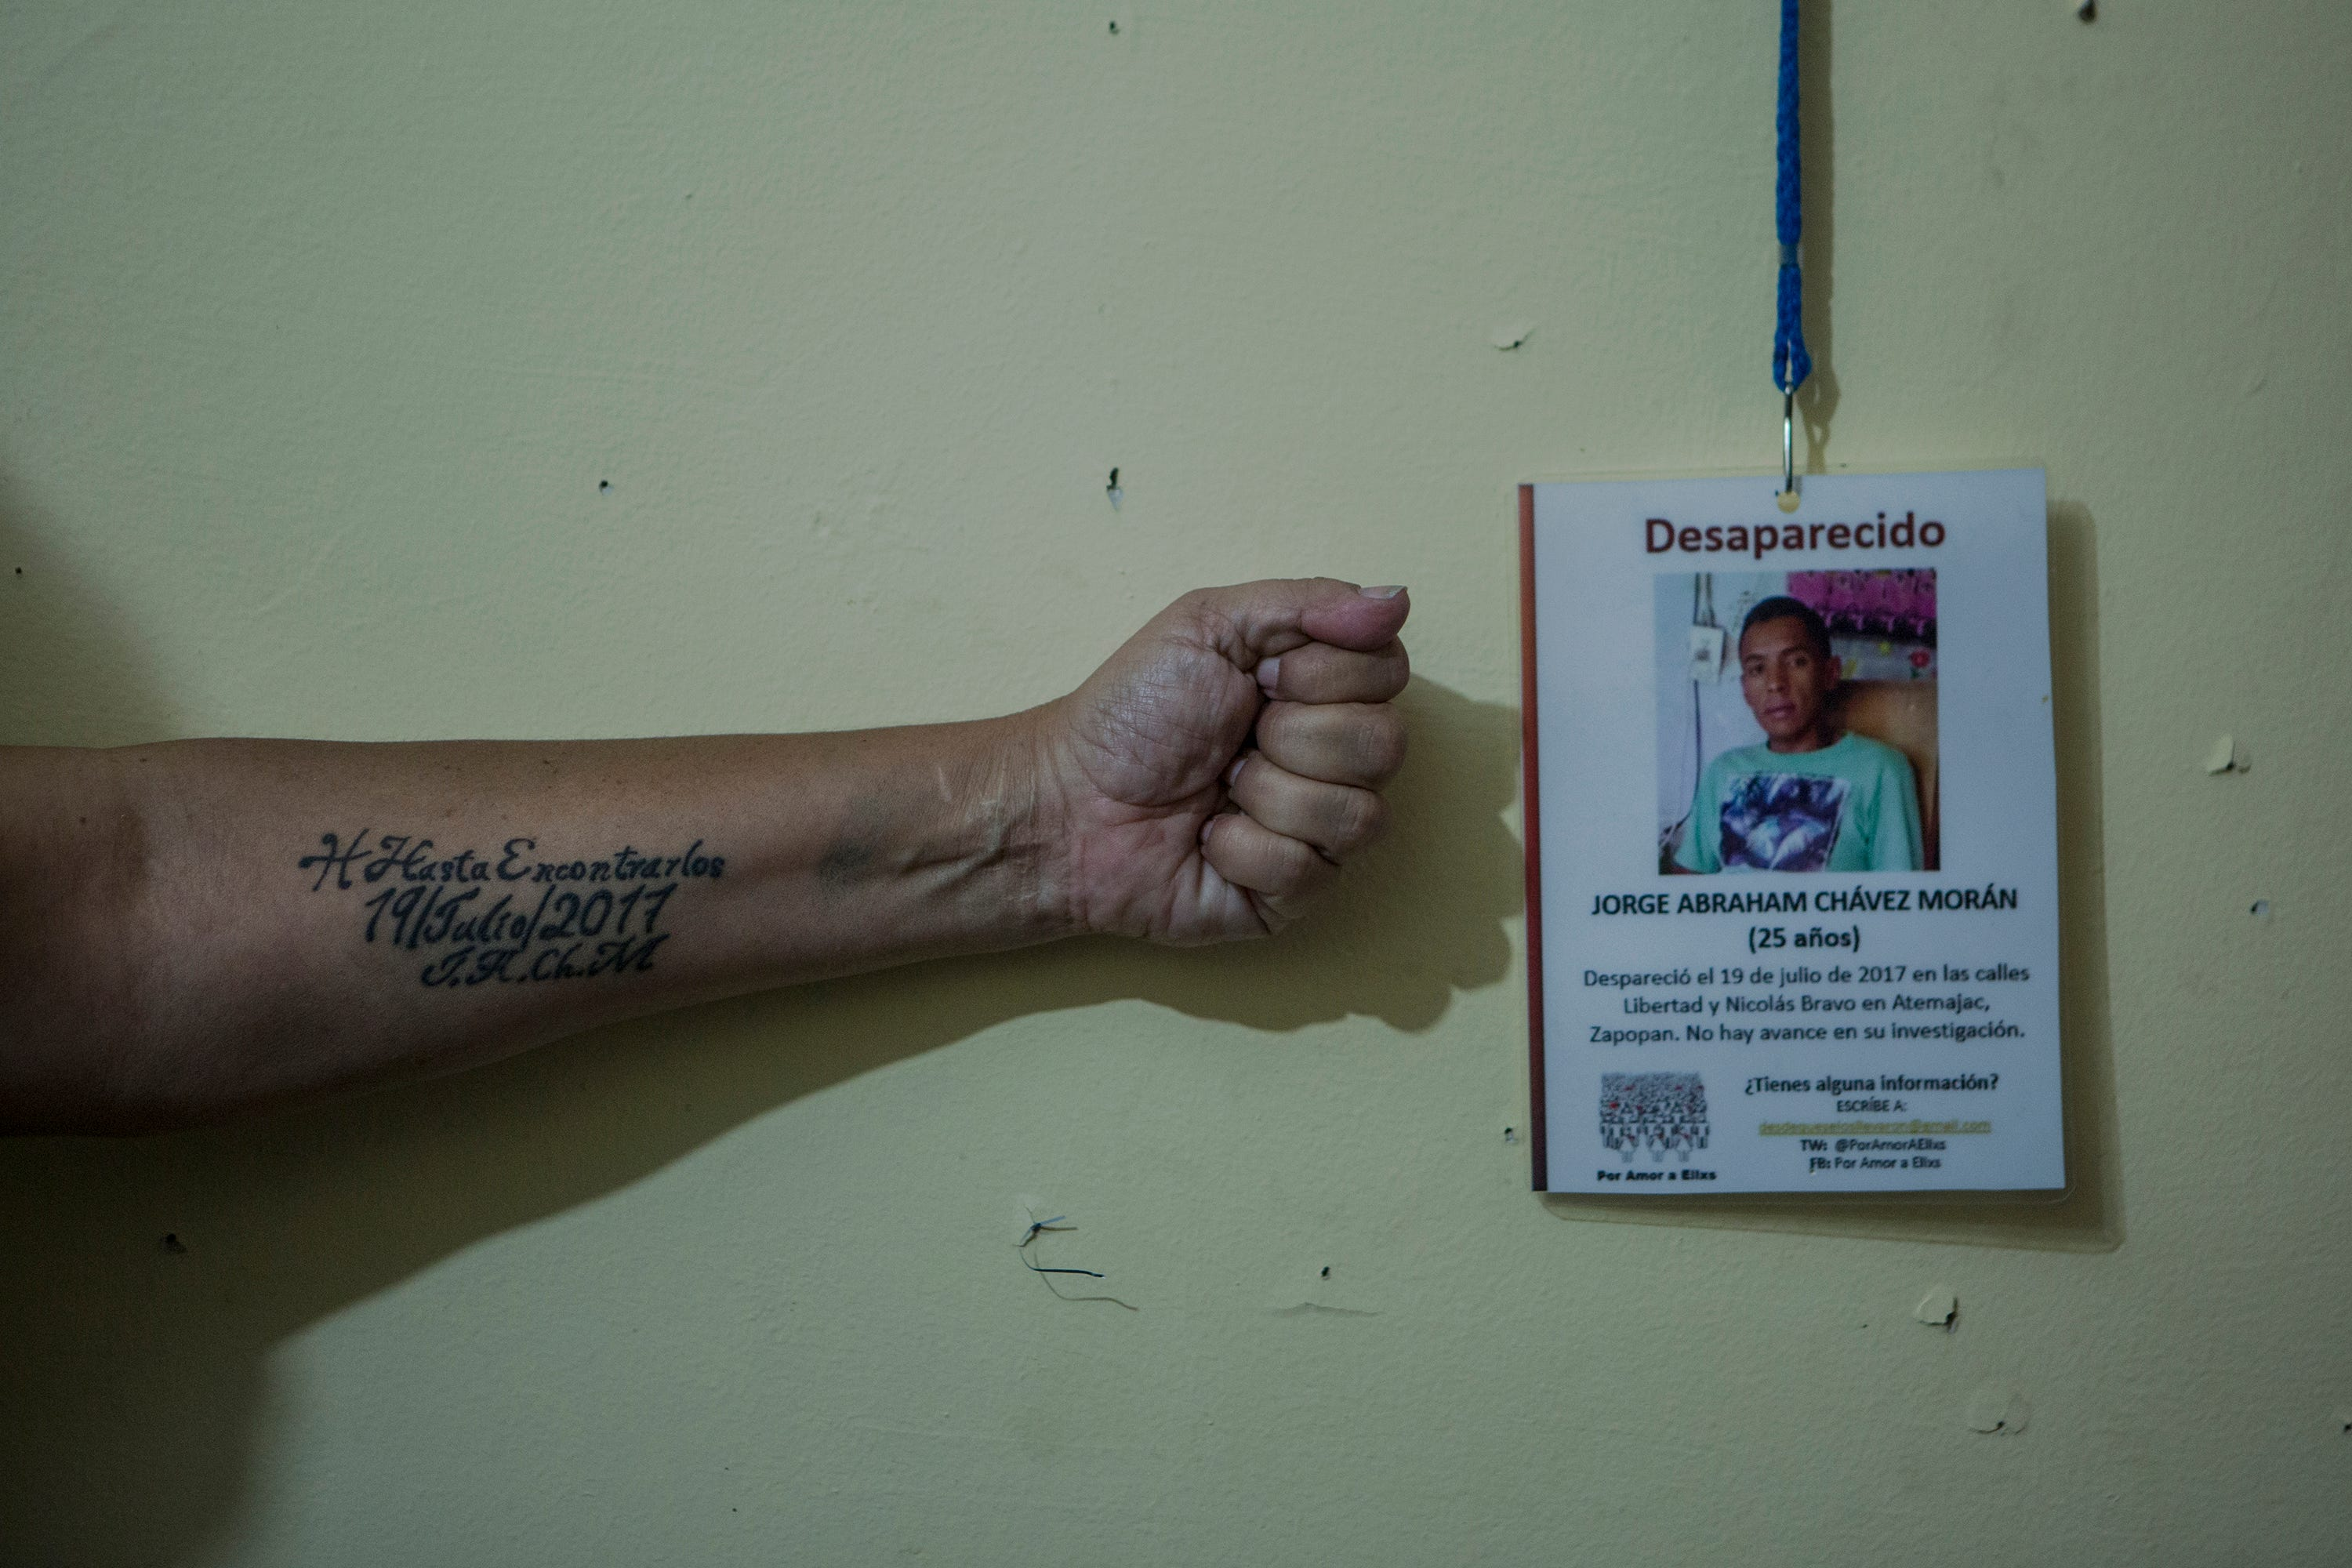 Silvia Morán has a tattoo on her arm of the date her son was kidnapped. Two years after his disappearance she has no information about where he is.